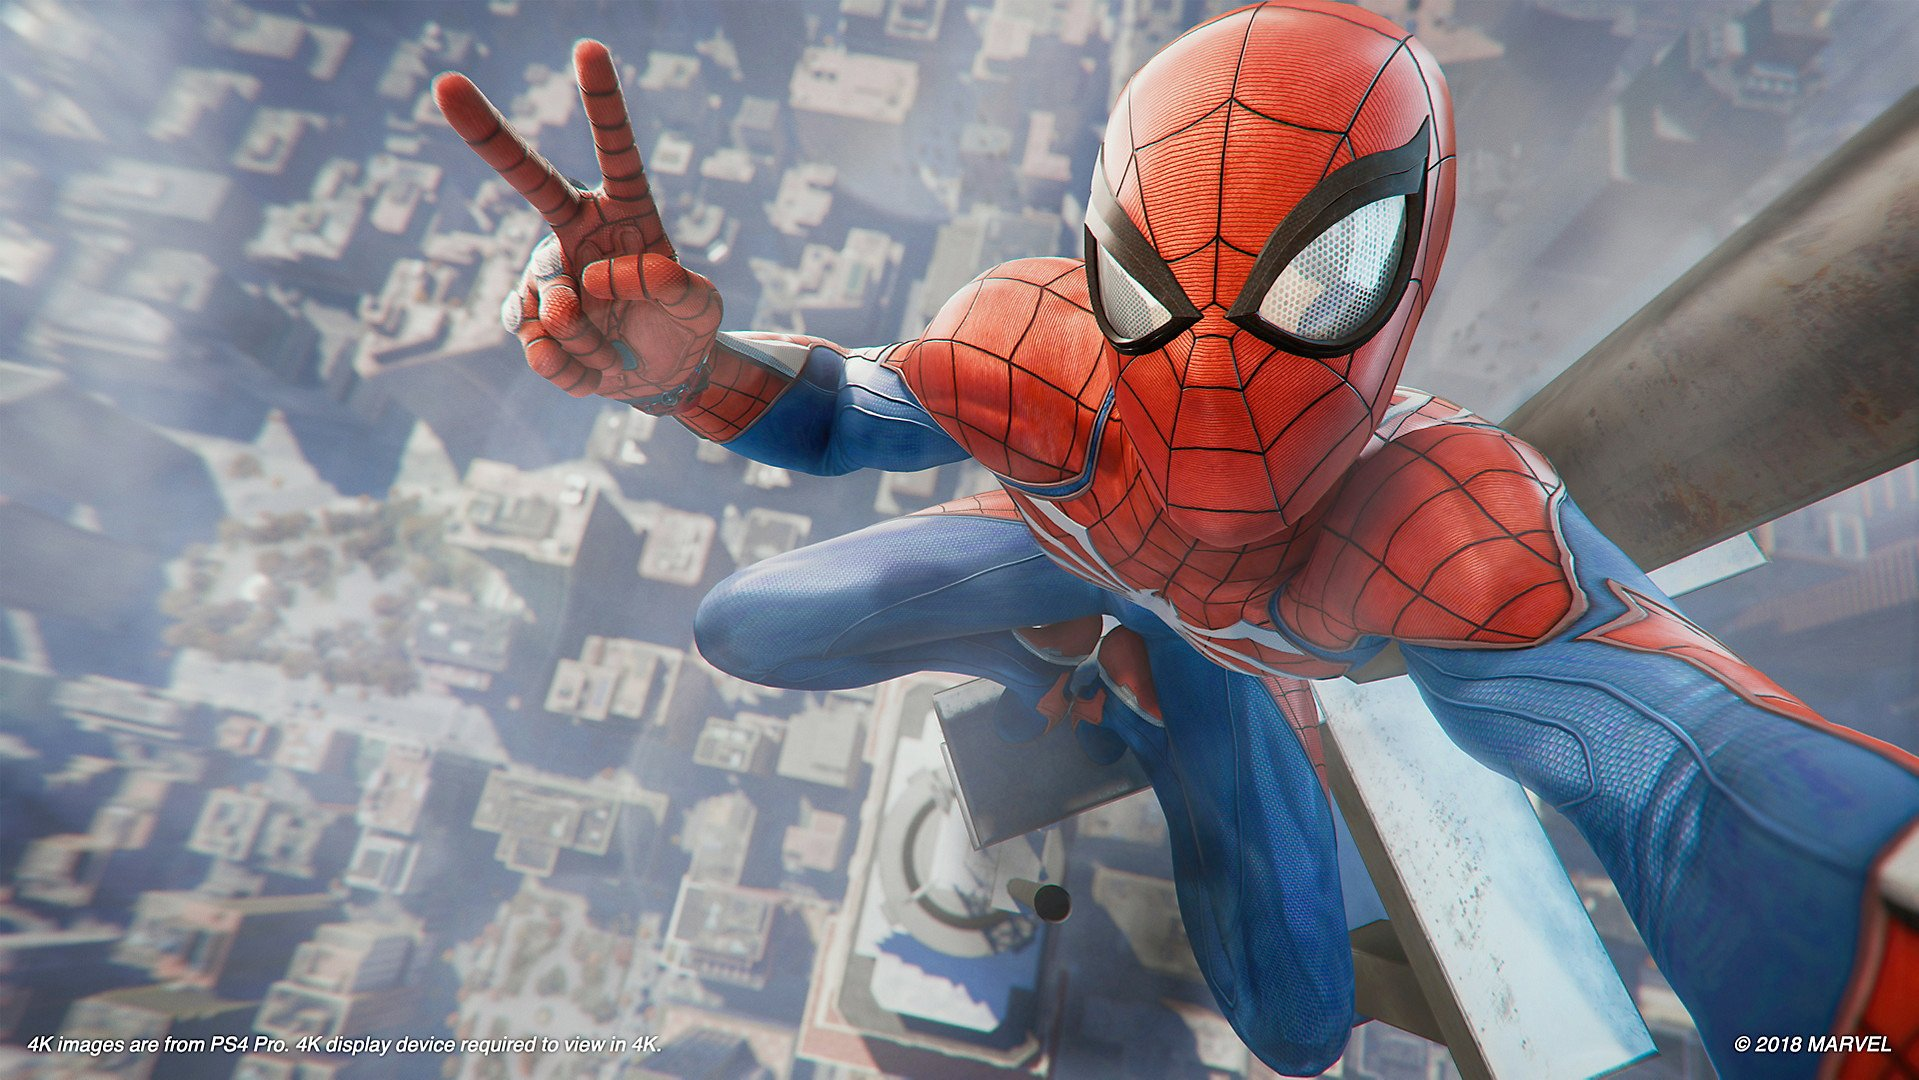 Spider-Man sets a new standard for superhero games screenshot